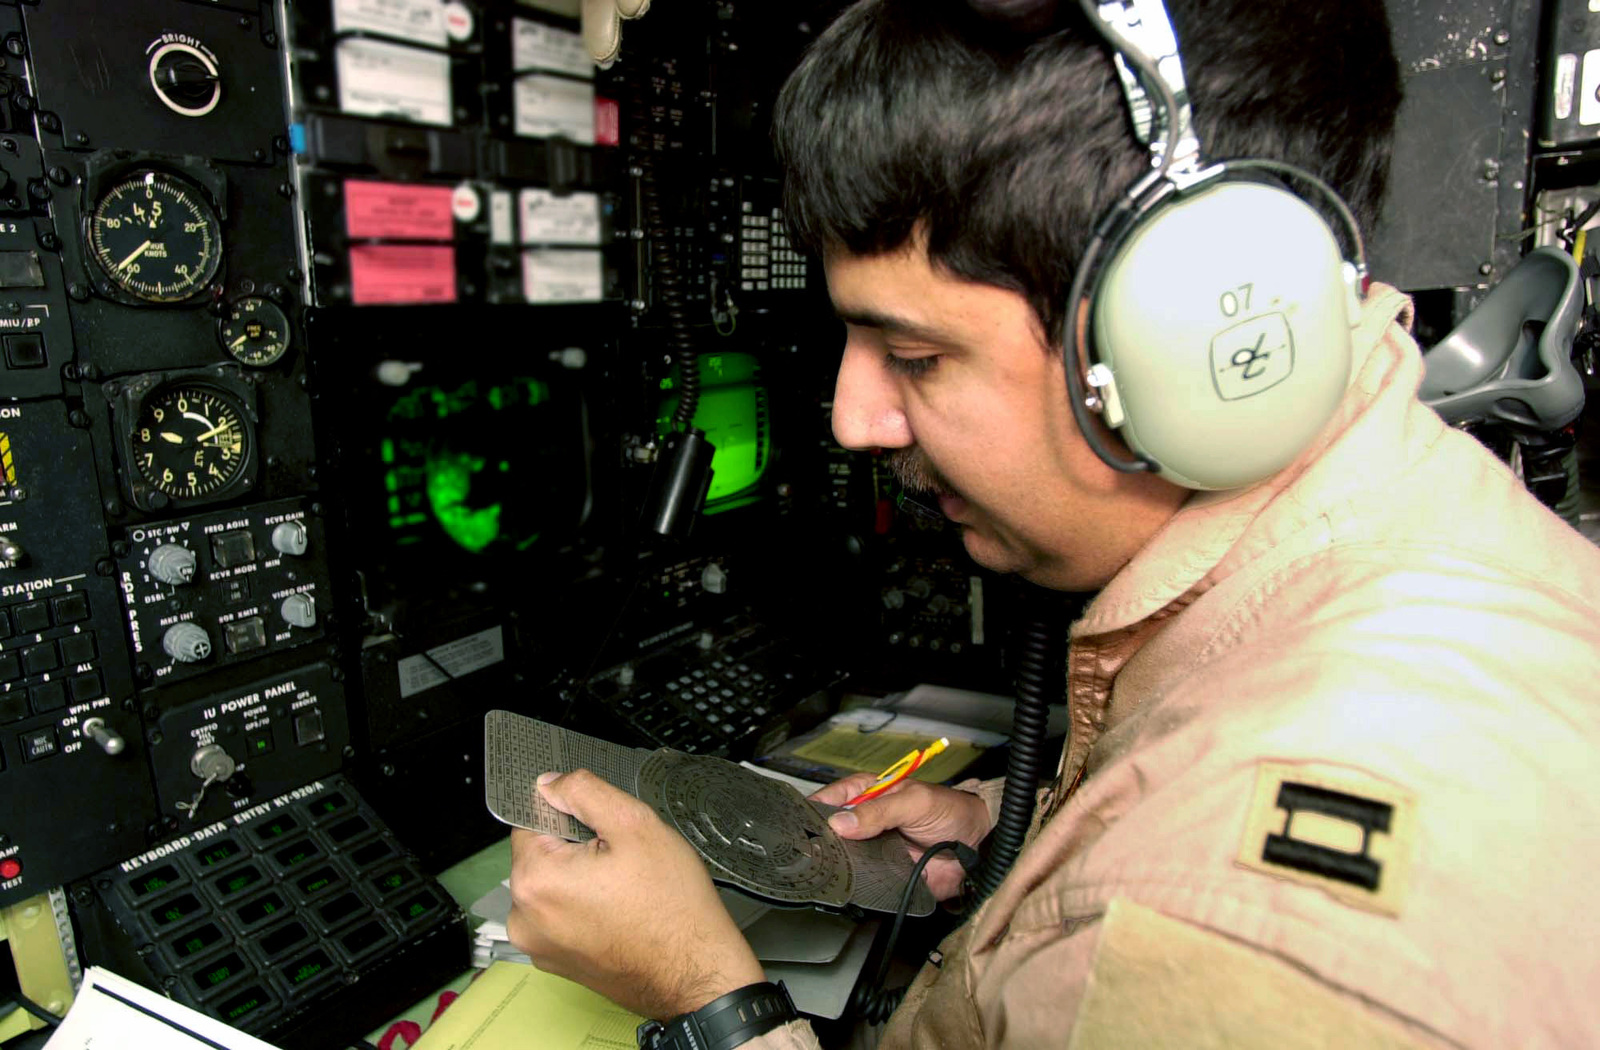 US Air Force (USAF) Captain (CAPT) Marc, Navigator, 23rd Expeditionary Bomb Squadron (EBS), Minot Air Force Base (AFB), North Dakota (ND), checks the flight plan with his E-6B Flight Computer at his station onboard the USAF B-52H Stratofortress bomber prior to a mission against Iraqi targets, during Operation IRAQI FREEDOM